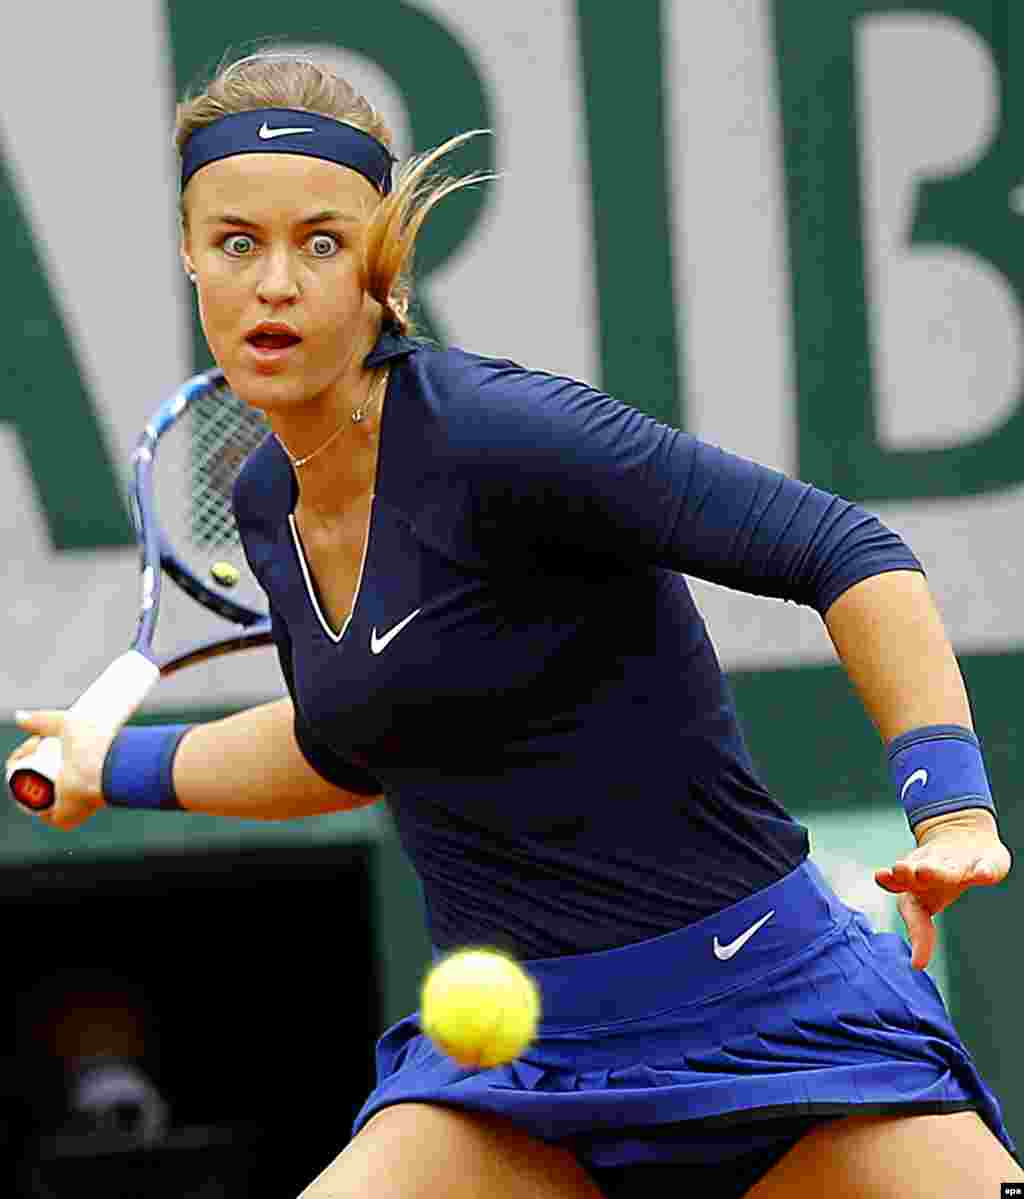 Anna Karolina Schmiedlova of Slovakia is caught in action against Garbine Muguruza of Spain during their women's singles first-round match at the French Open tennis tournament at Roland Garros in Paris. Muguruza won 3-6, 6-3, 6-3. (epa/Robert Ghement)